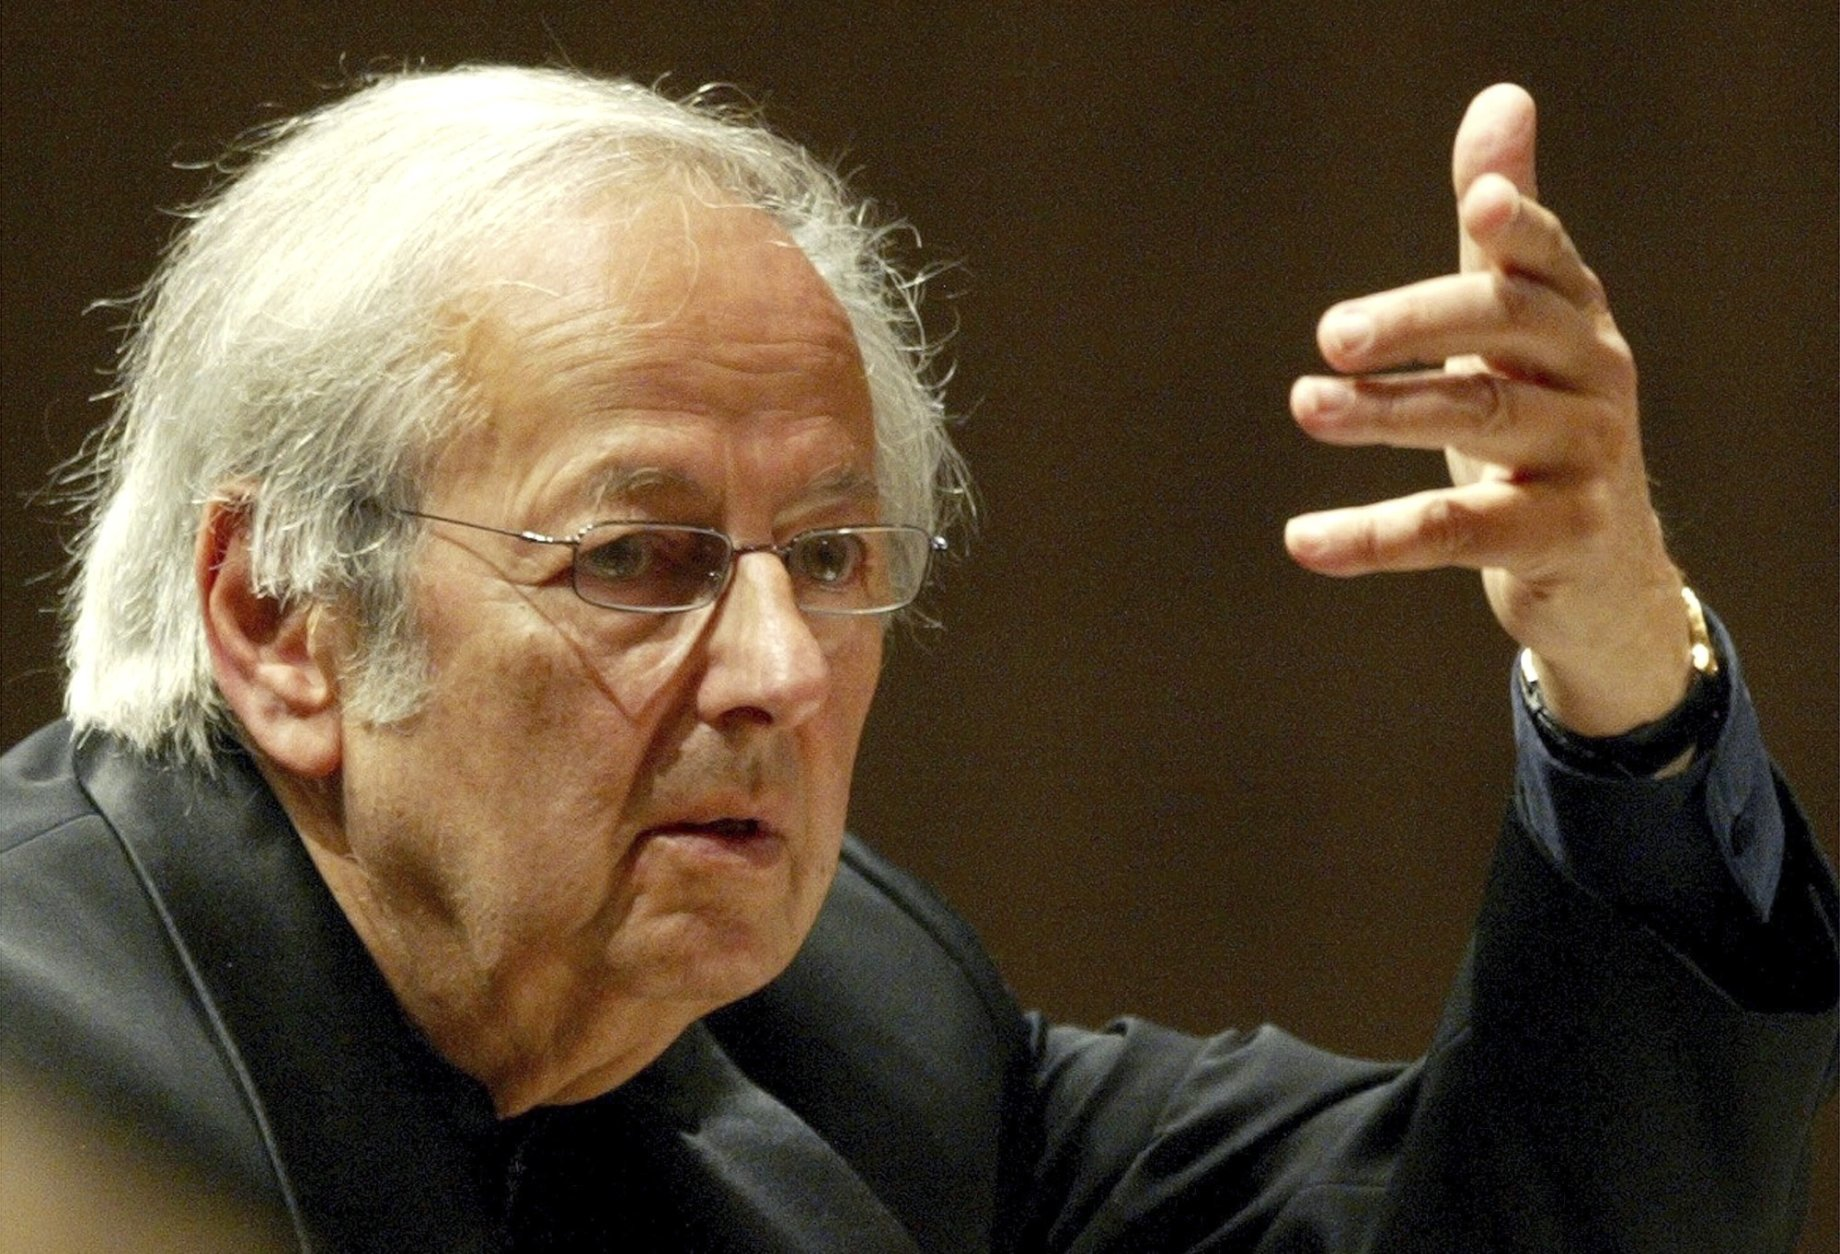 FILE - In this Sept. 1, 2004 file photo, conductor of the Oslo Philharmonic Orchestra, Andre Previn, conducts the 15th symphony concert during the Lucerne Festival in the concert hall in Lucerne, Switzerland.  Previn, the pianist, composer and conductor whose broad reach took in the worlds of Hollywood, jazz and classical music, died in his Manhattan home, Thursday, Feb. 28, 2019. He was 89. (Urs FlueelerKEYSTONE via AP, File)